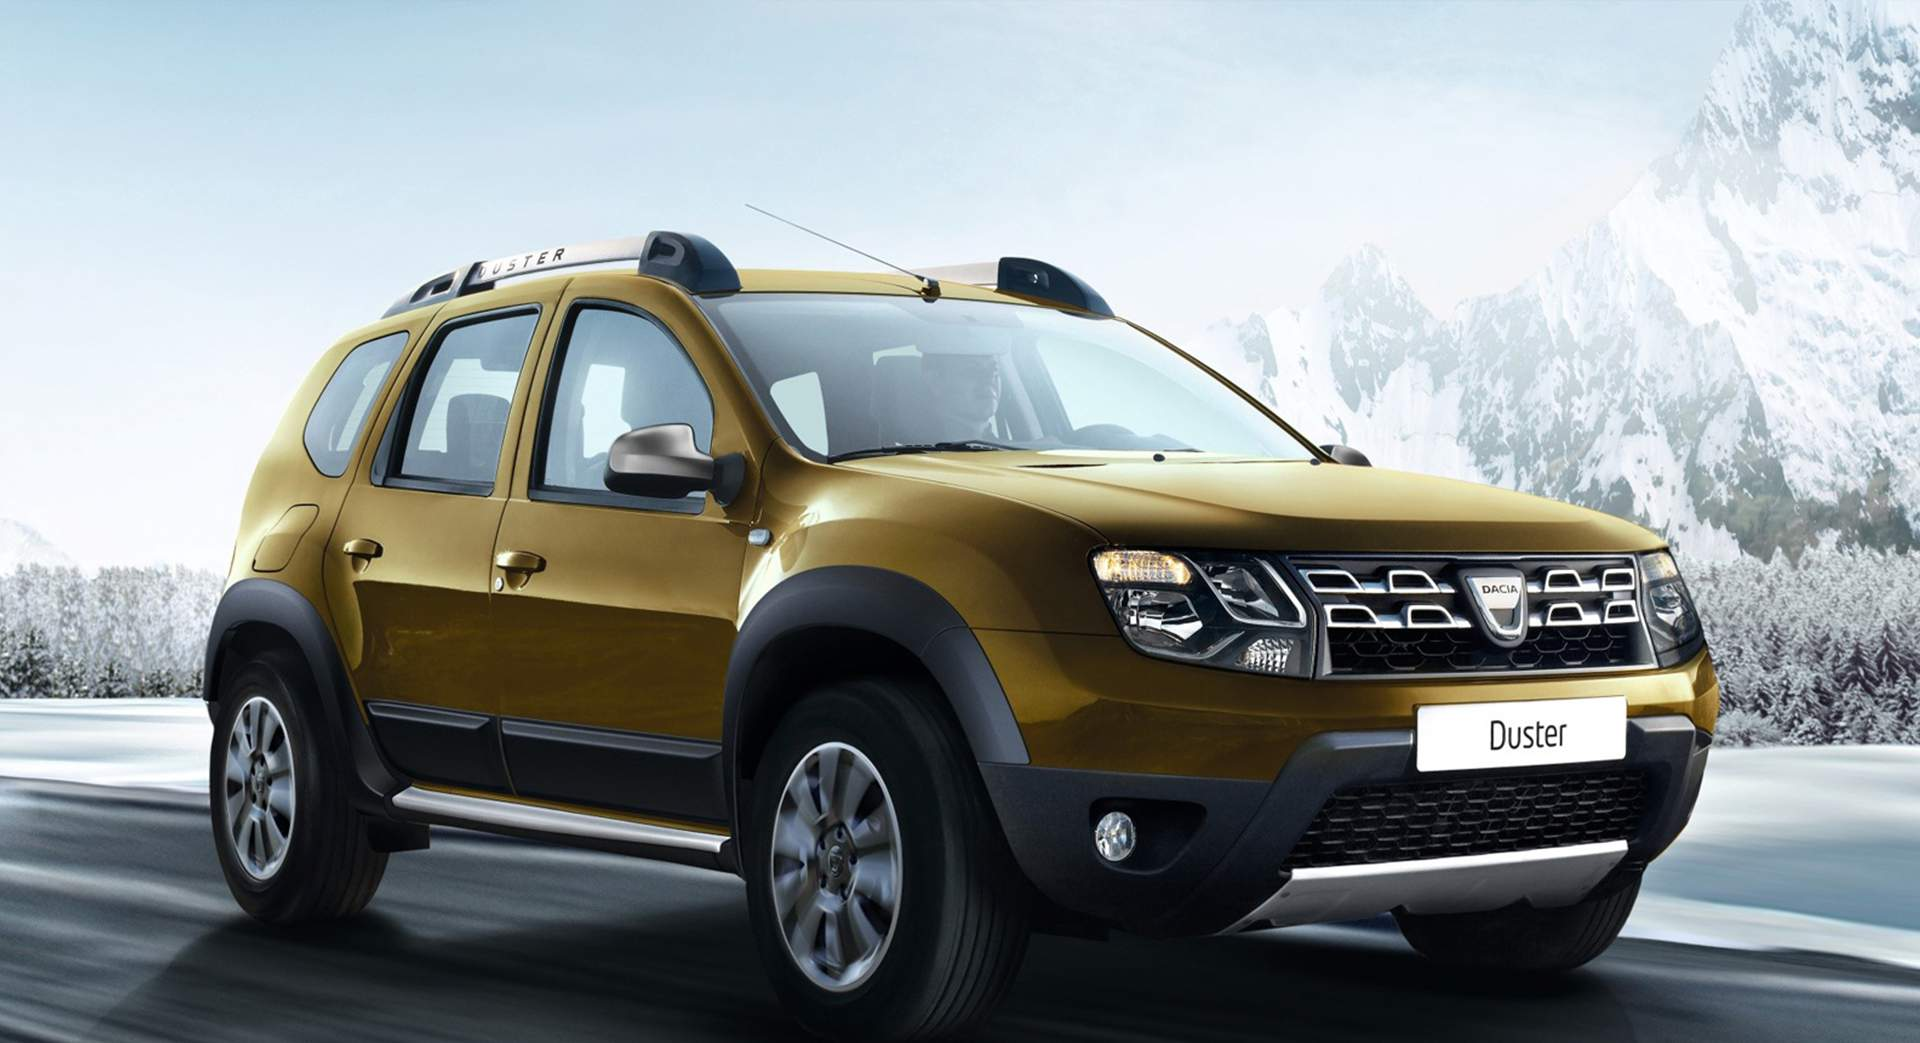 dacia nice dacia wallpapers vehicles hq dacia pictures 4k wallpapers file dacia supernova nice. Black Bedroom Furniture Sets. Home Design Ideas